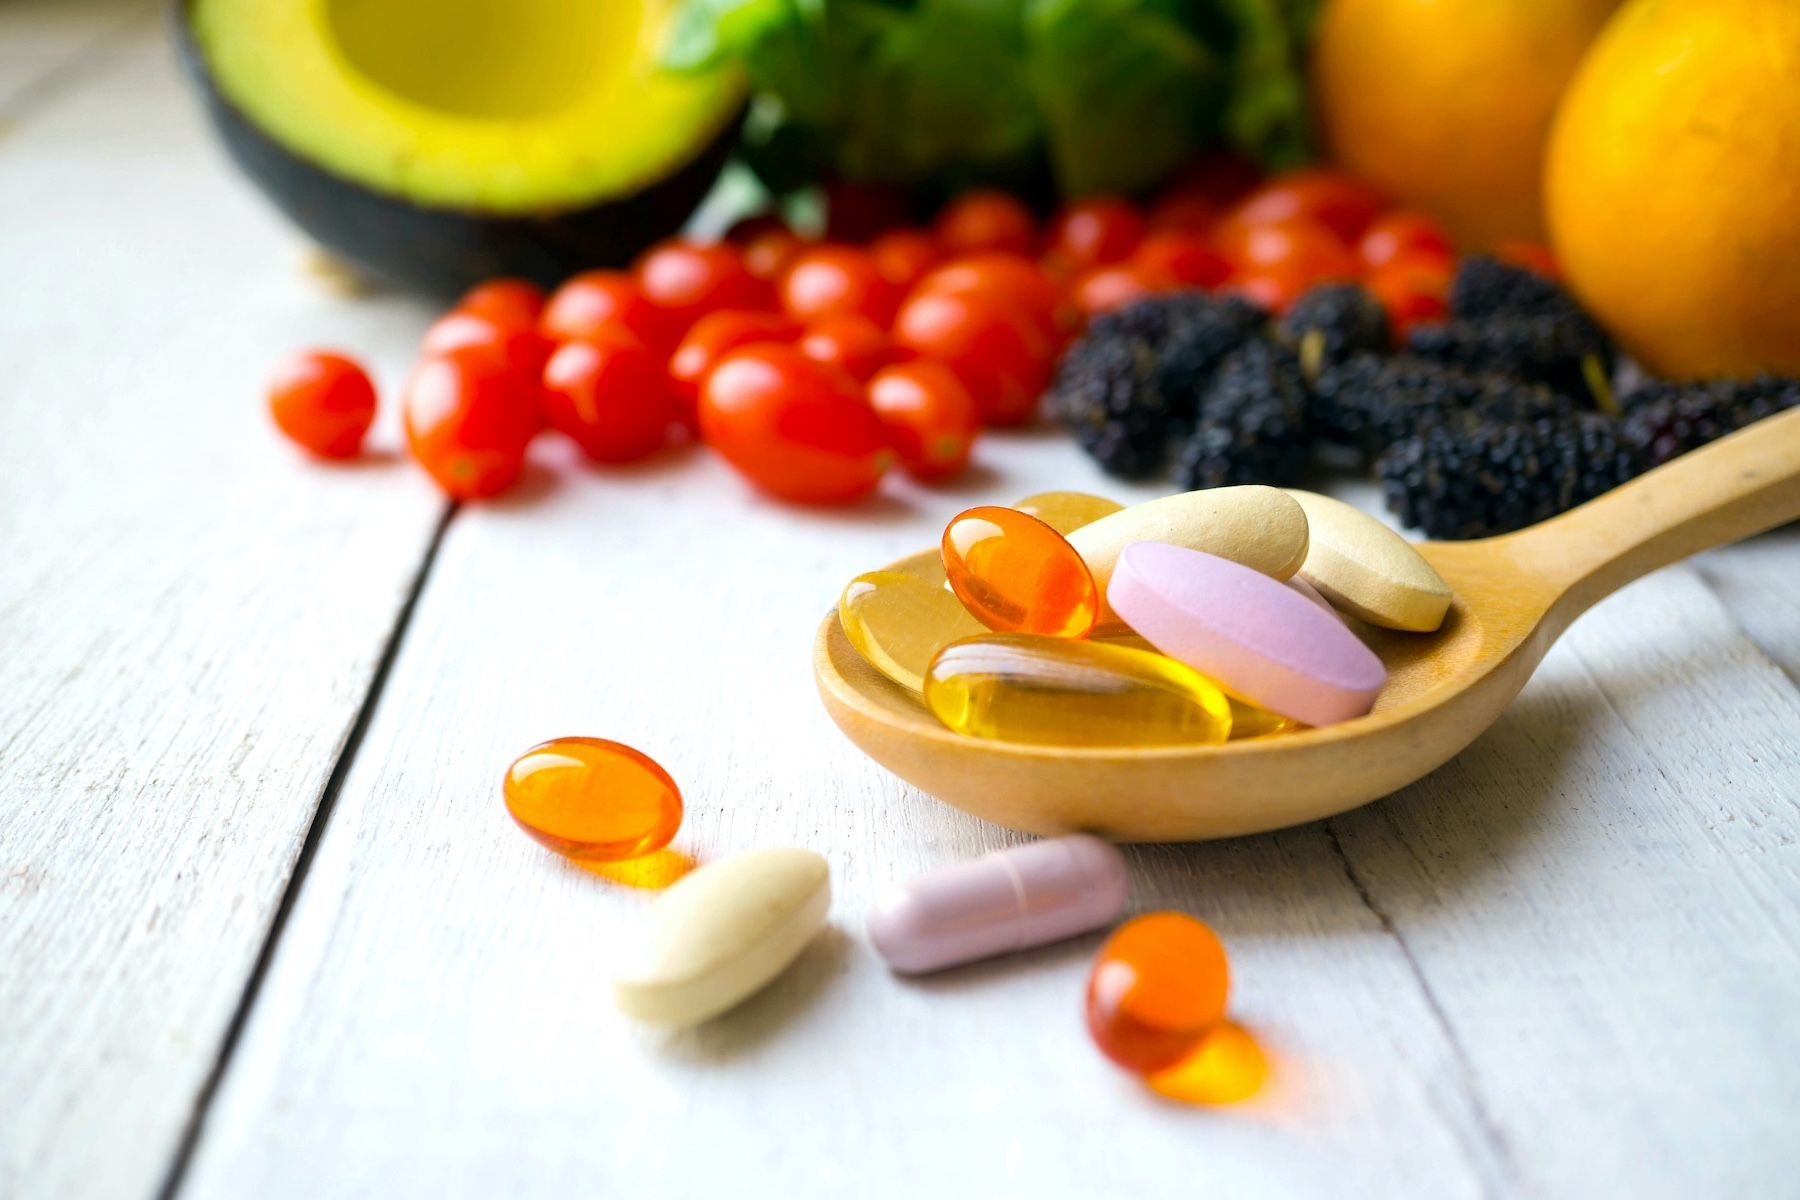 Pills on a spoon with fresh produce in the background.